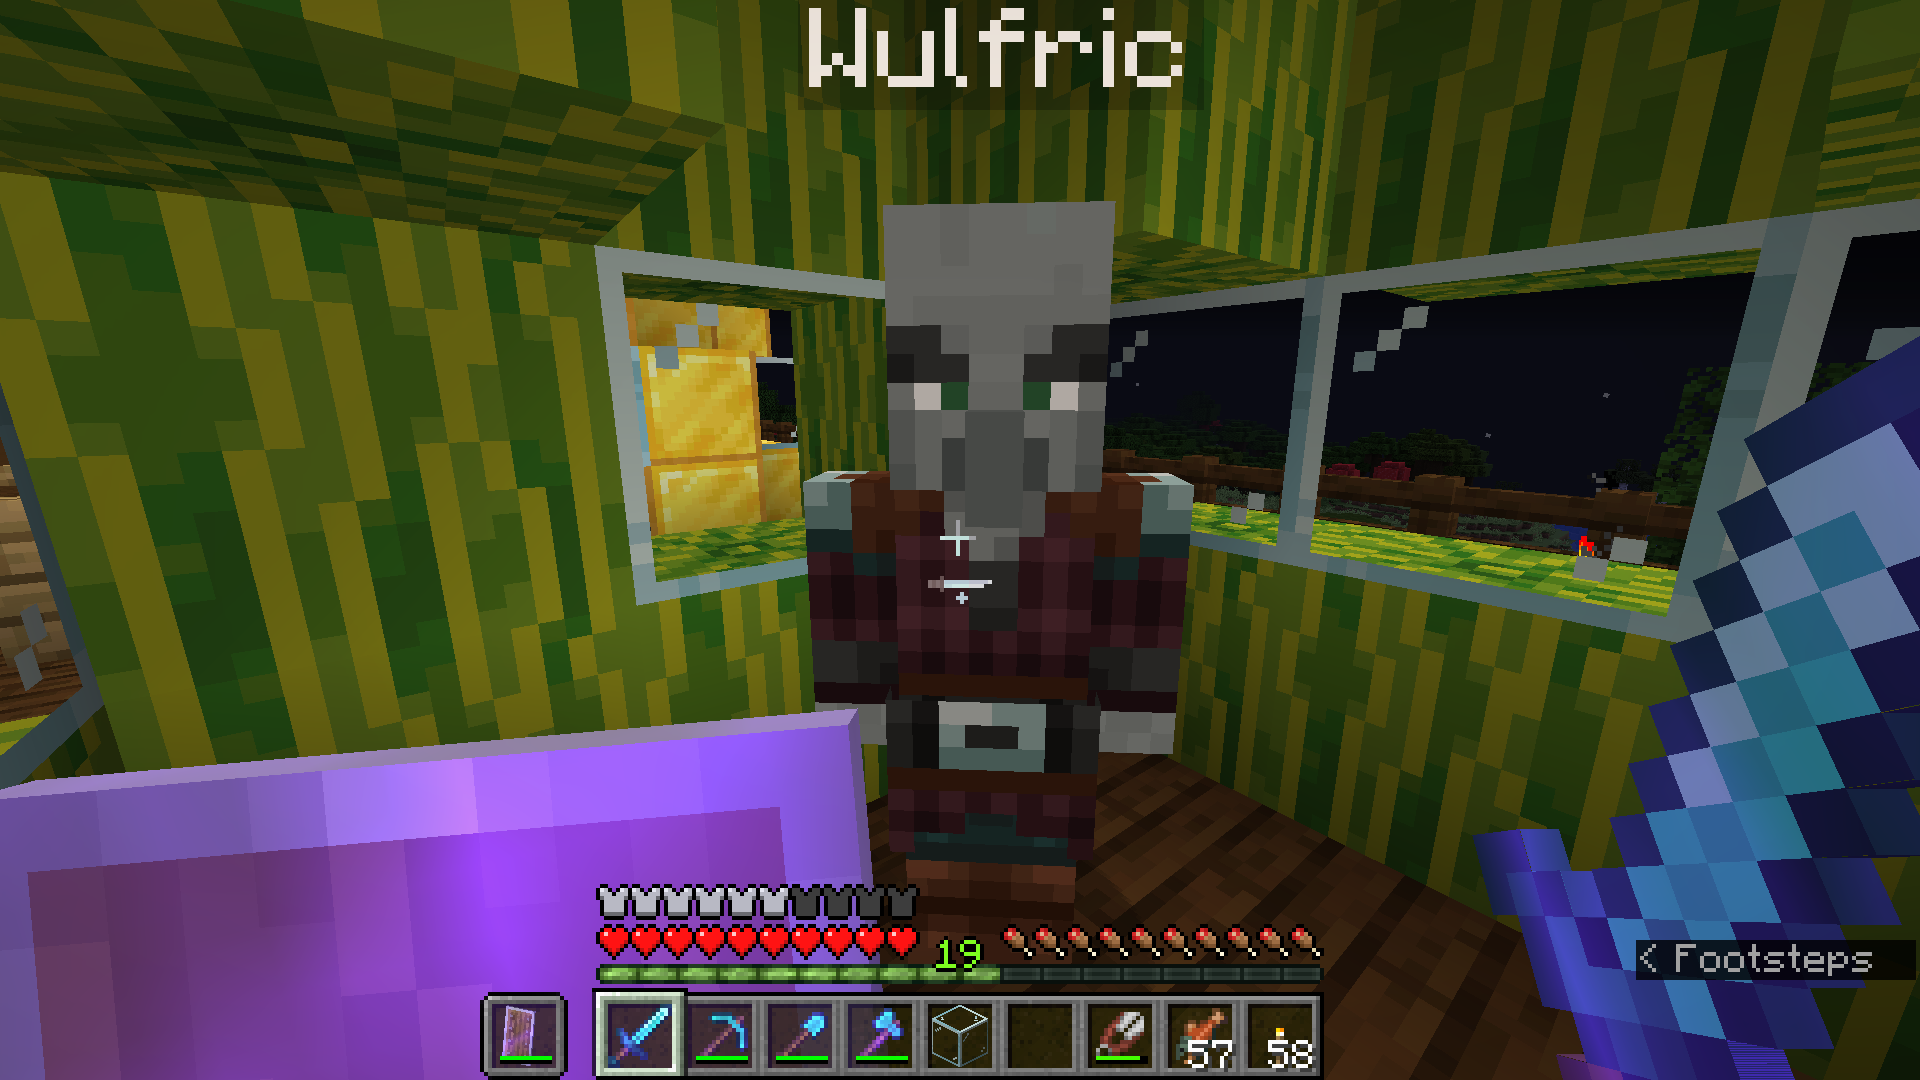 Wulfric in his melon house